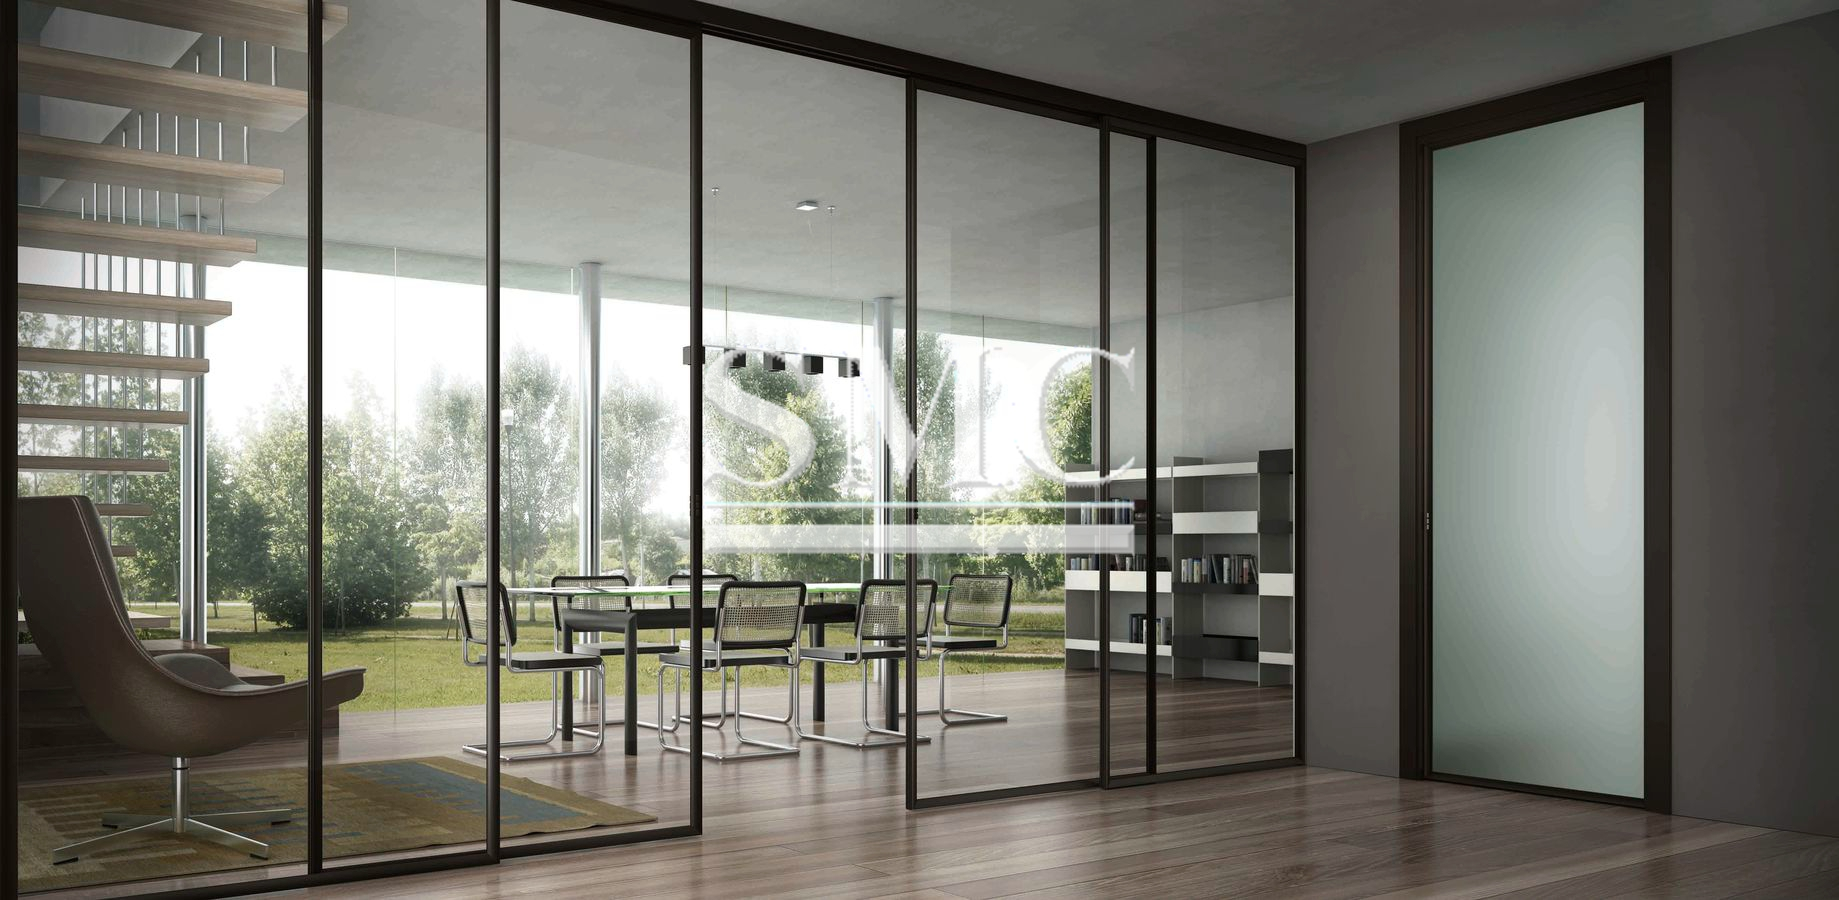 What makes sliding doors be so unique and useful?